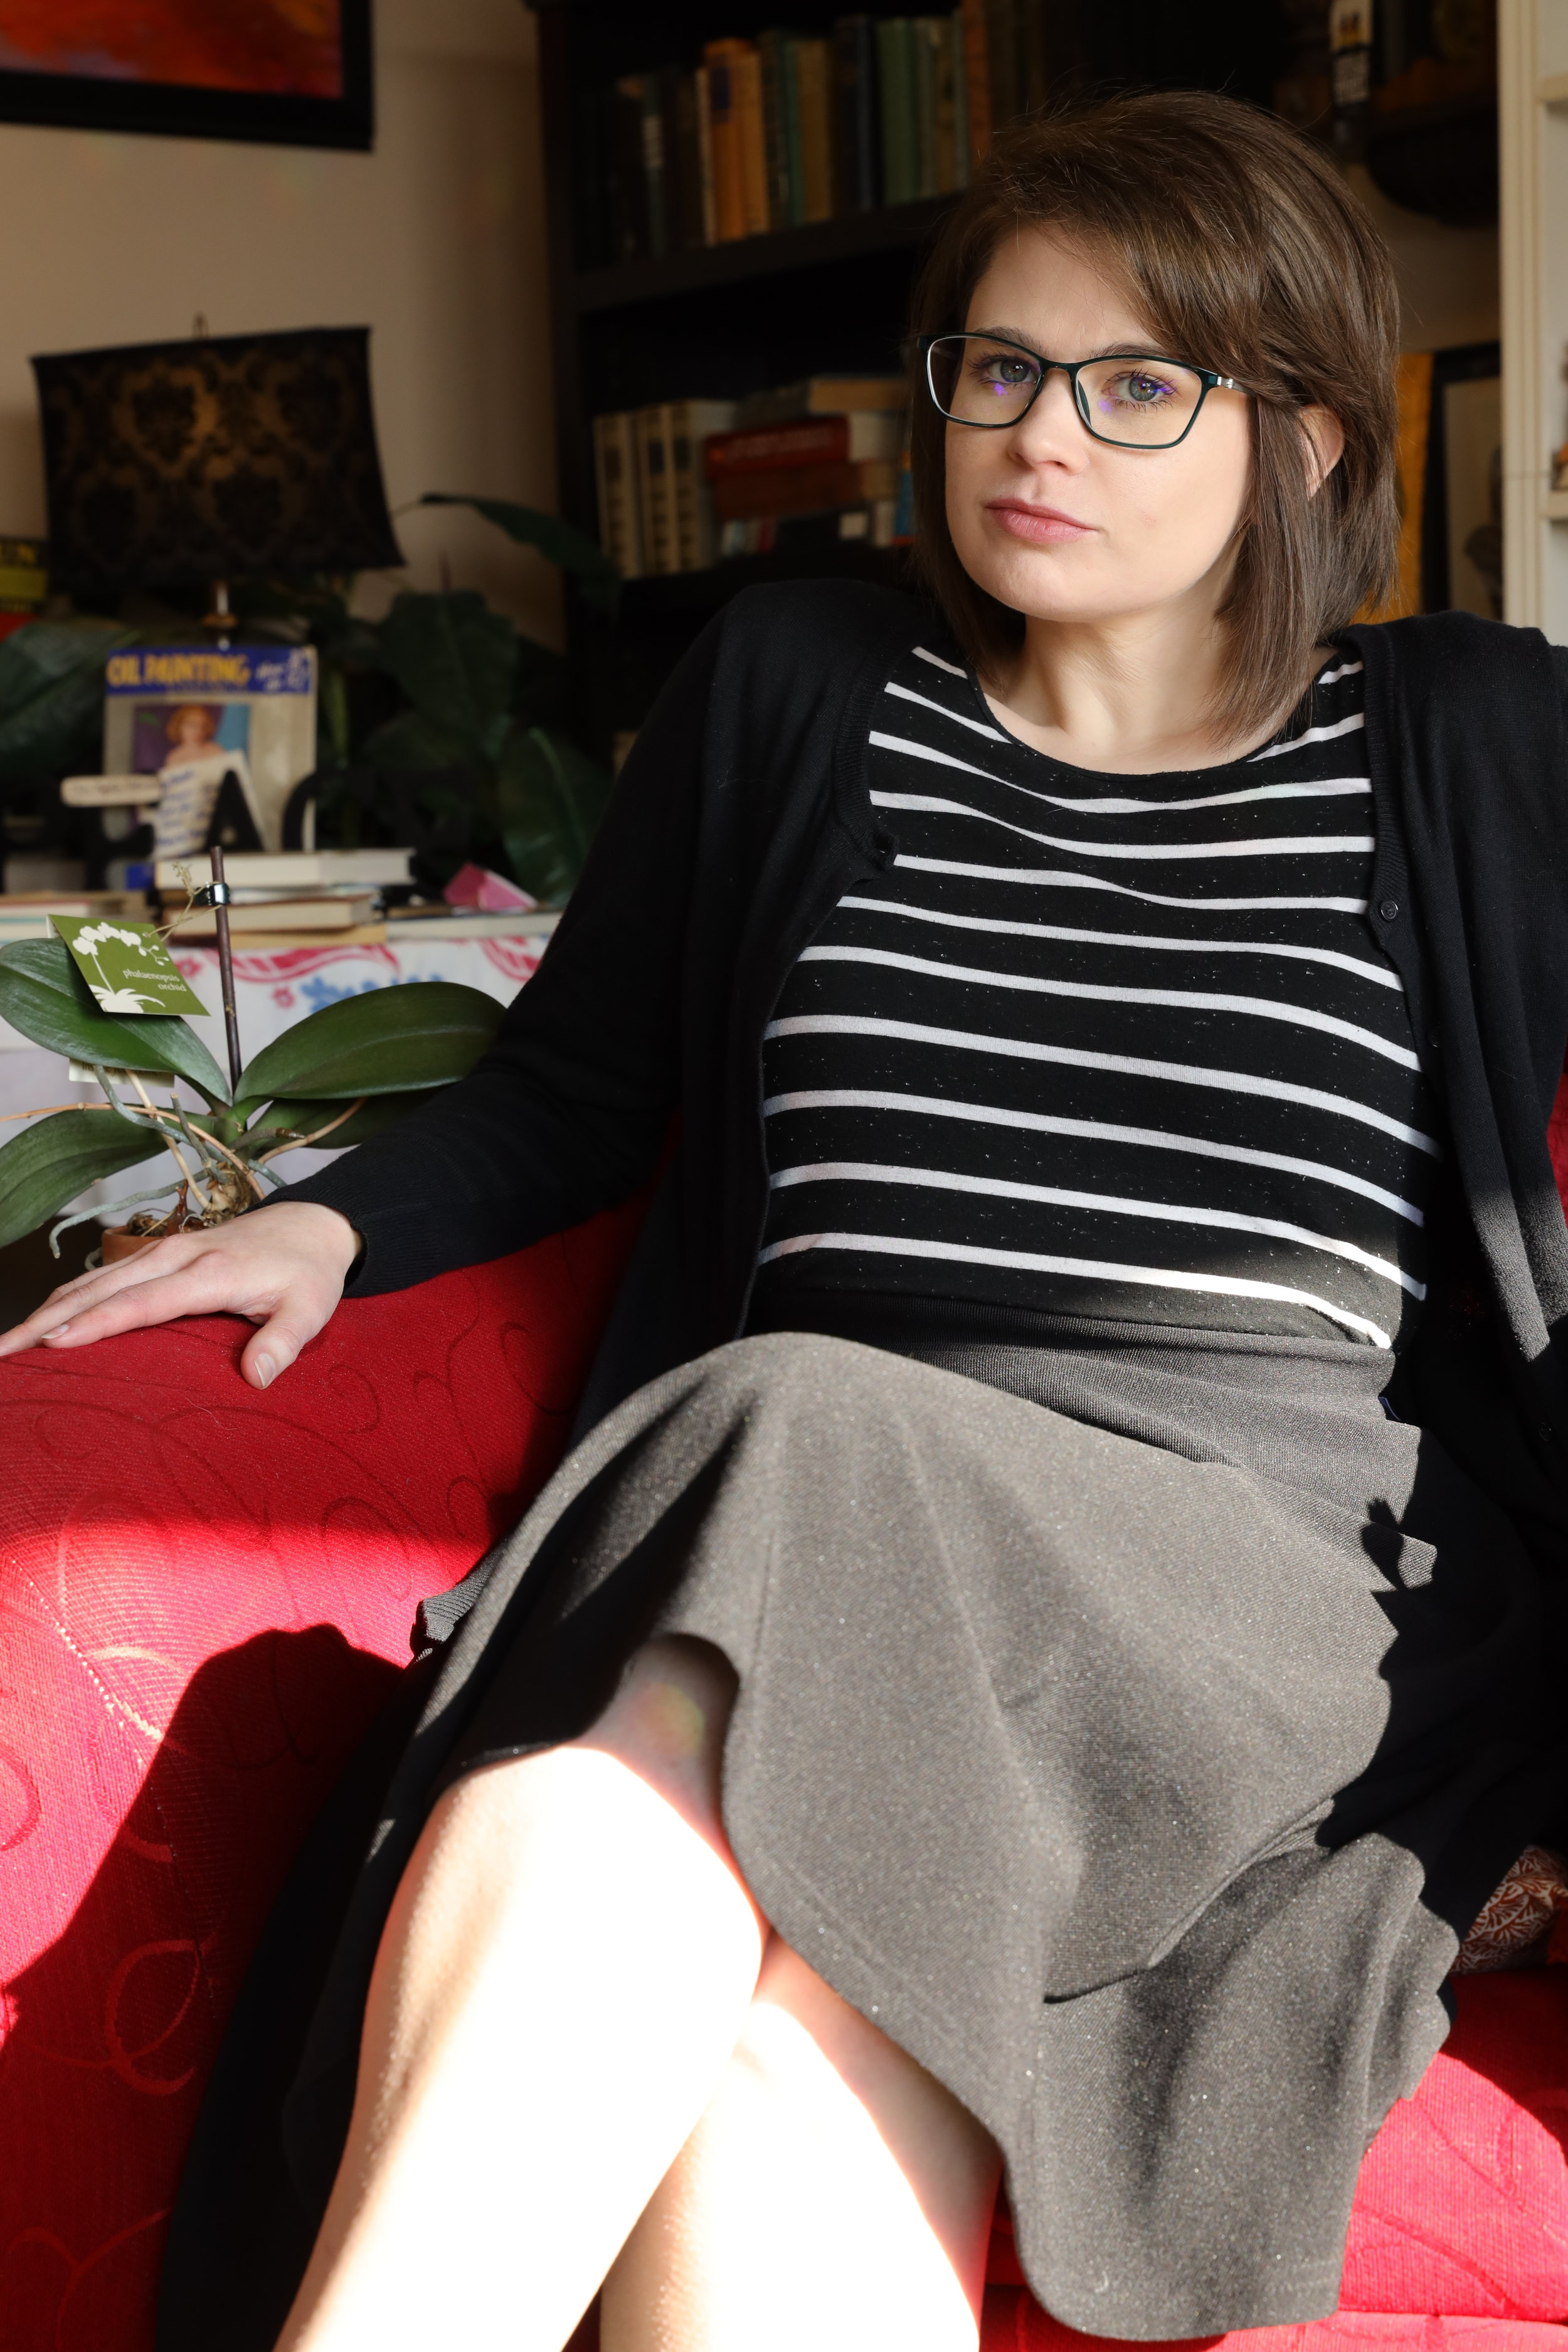 Morgan Ashton Griffin / Morgue Ann  {she/her}  screenwriting, poetry, performance art, theatre   By day I'm a teen services librarian. By night I'm an aspiring writing and creator. If you'd like to work with me in a professional or creative (or both!) context, email me at  morgueann666@gmail.com .   Instagram  |  Twitter